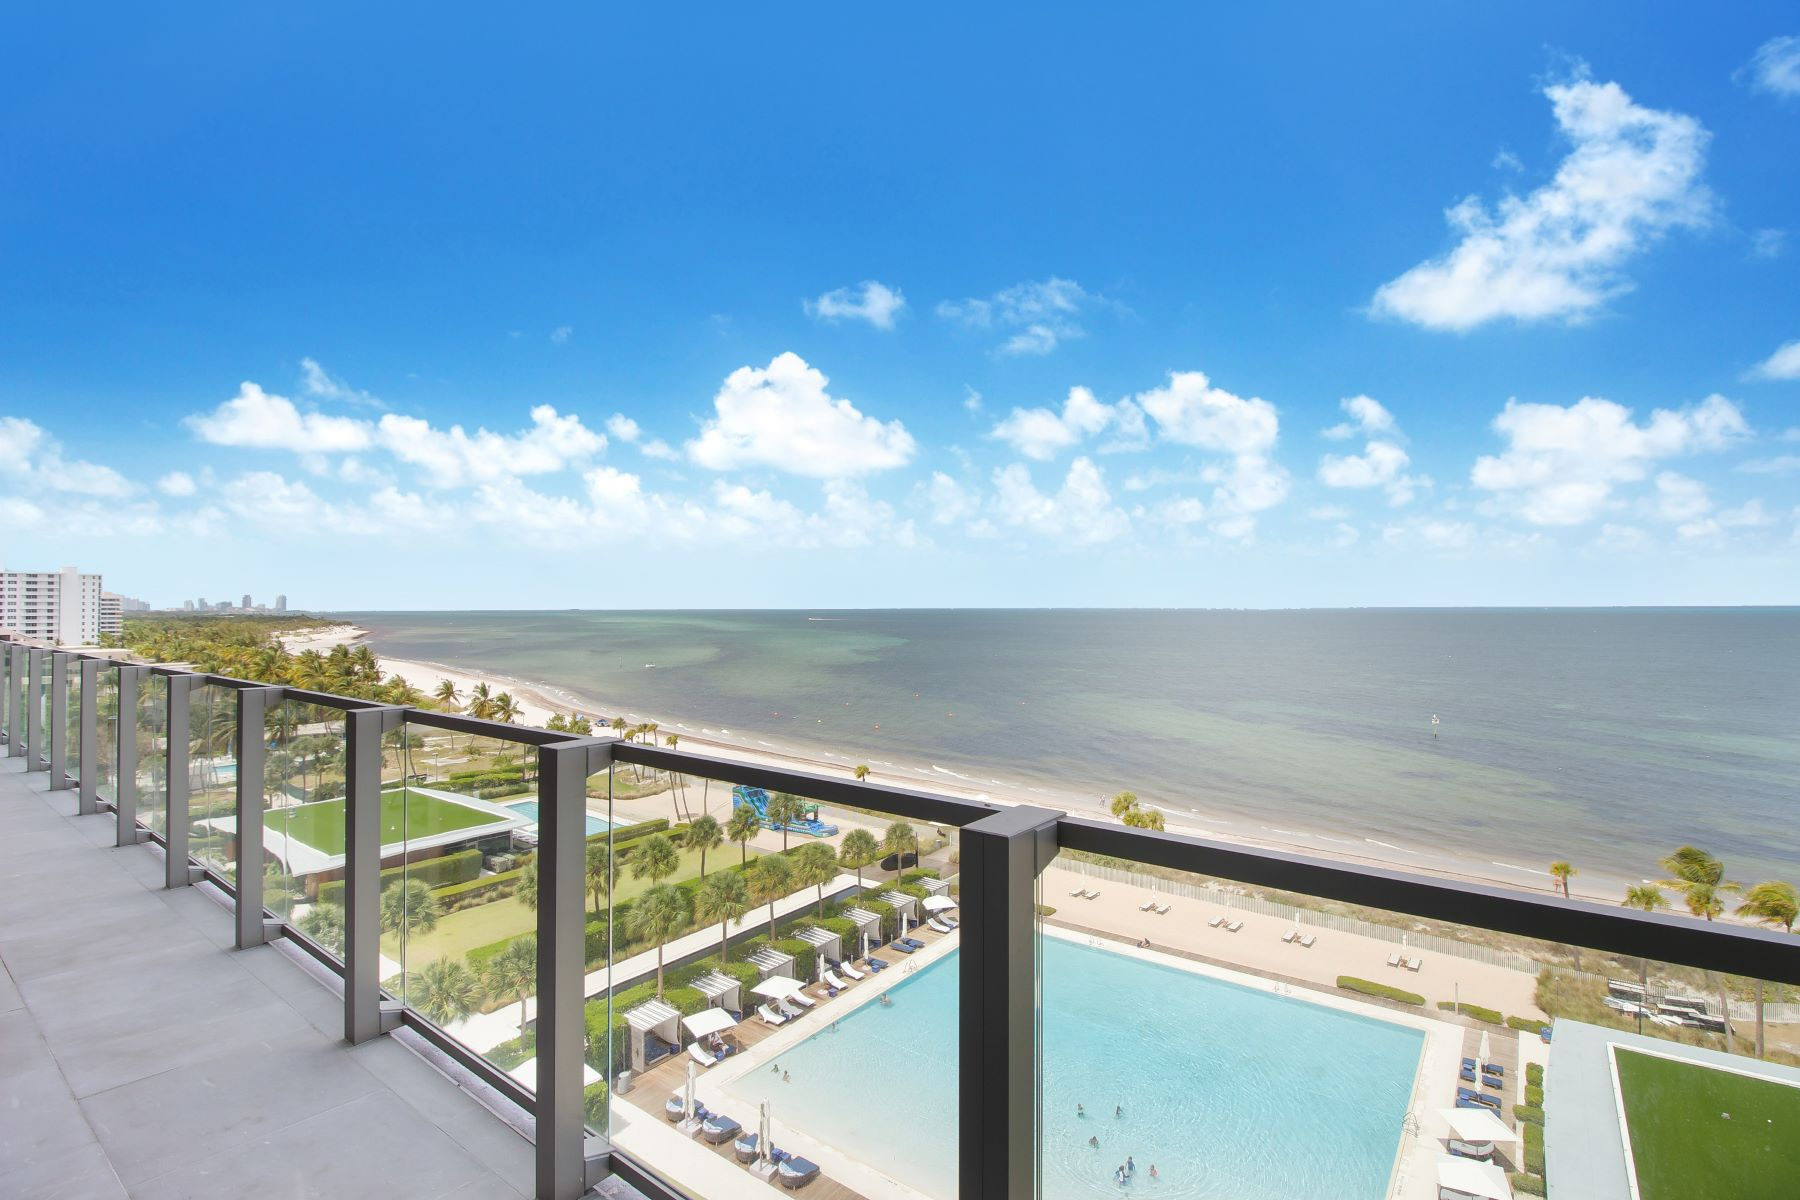 Condominiums for Sale at 360 Ocean Dr 902S, Key Biscayne, Florida 33149 United States